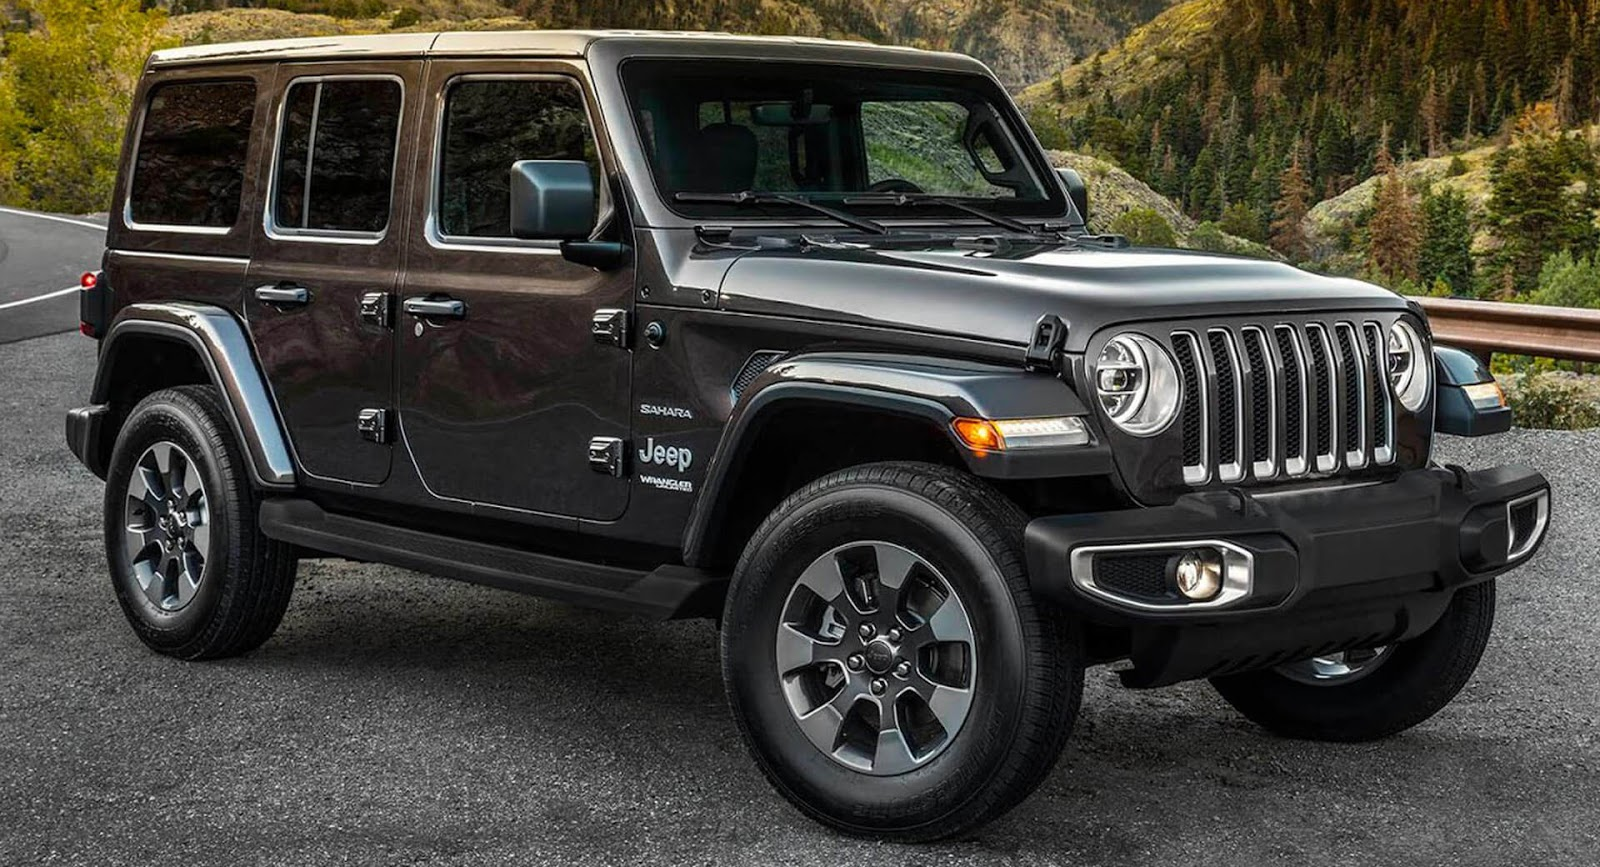 The 2018 Jeep Wrangler Jl Has An Evolutionary Design That Is Instantly Recognizable But Company Also Made Some Tweaks To Make Sure Consumers